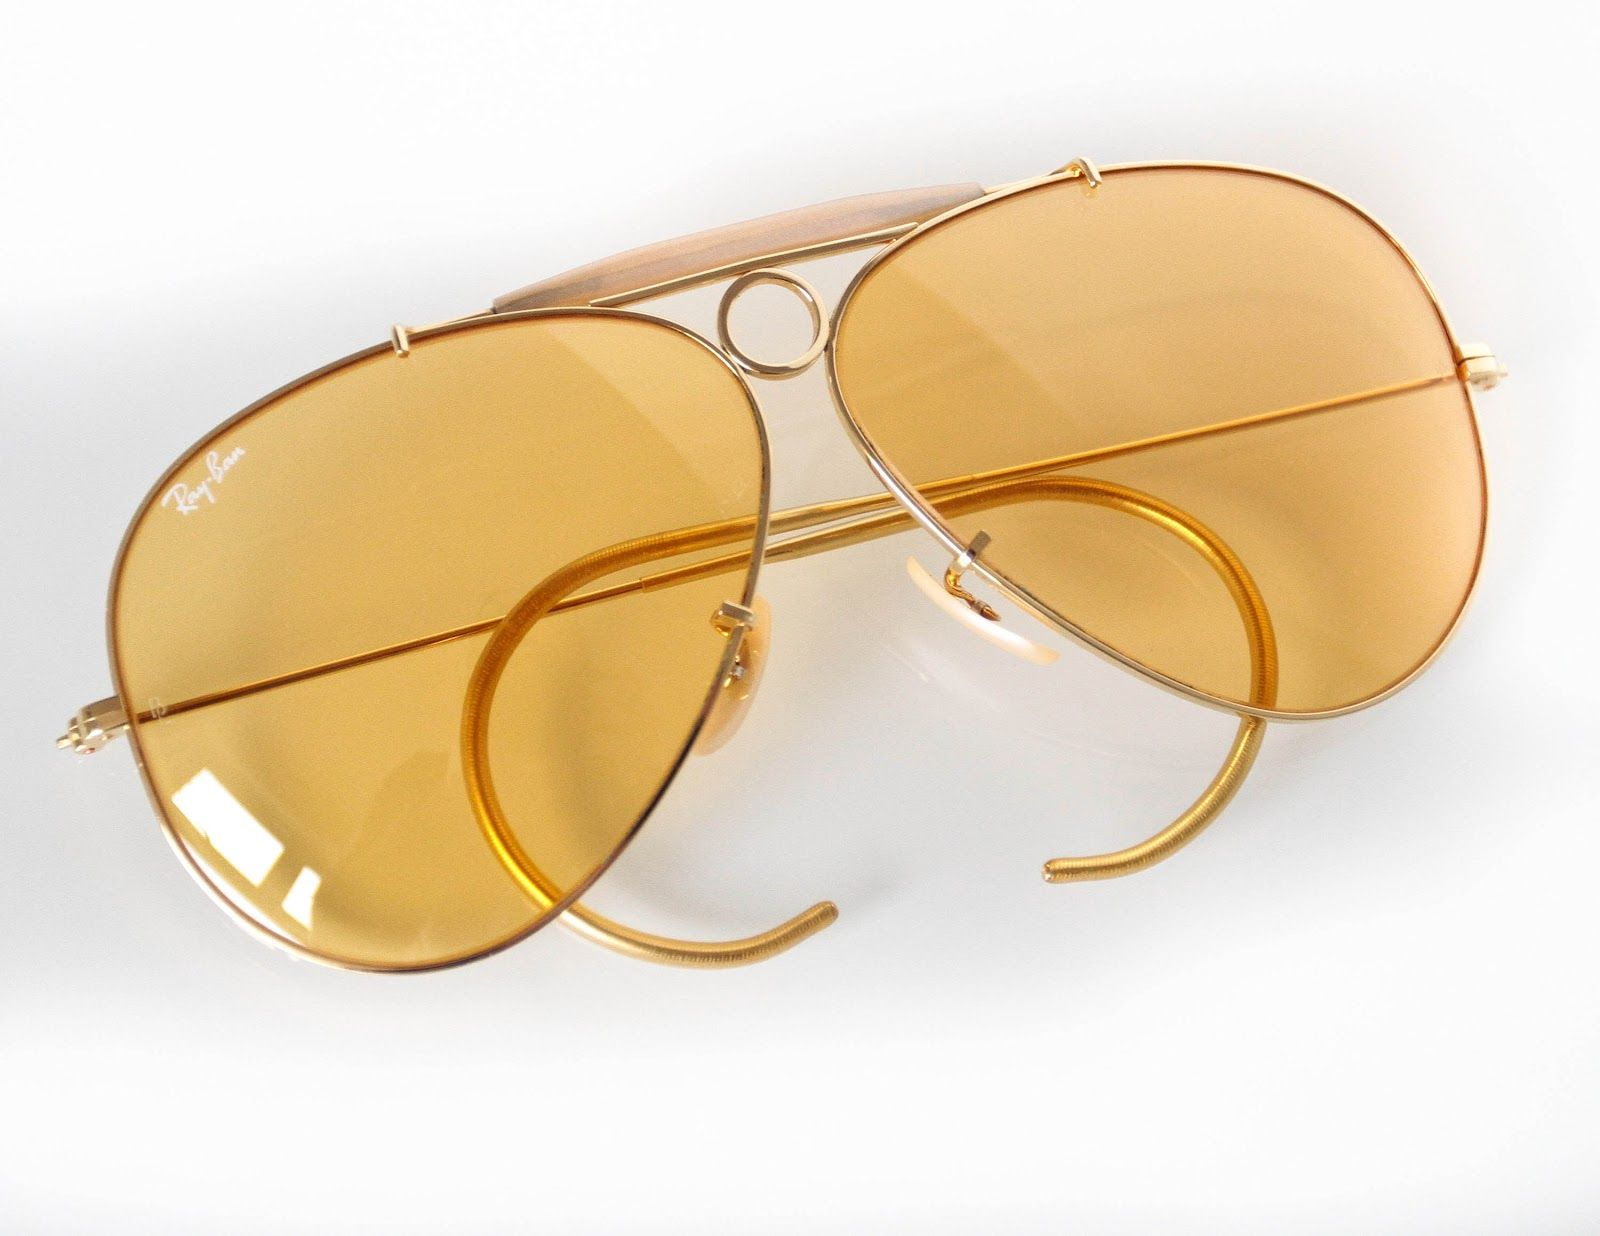 ray ban aviator sunglasses yellow  17 best ideas about ray ban shooter on pinterest